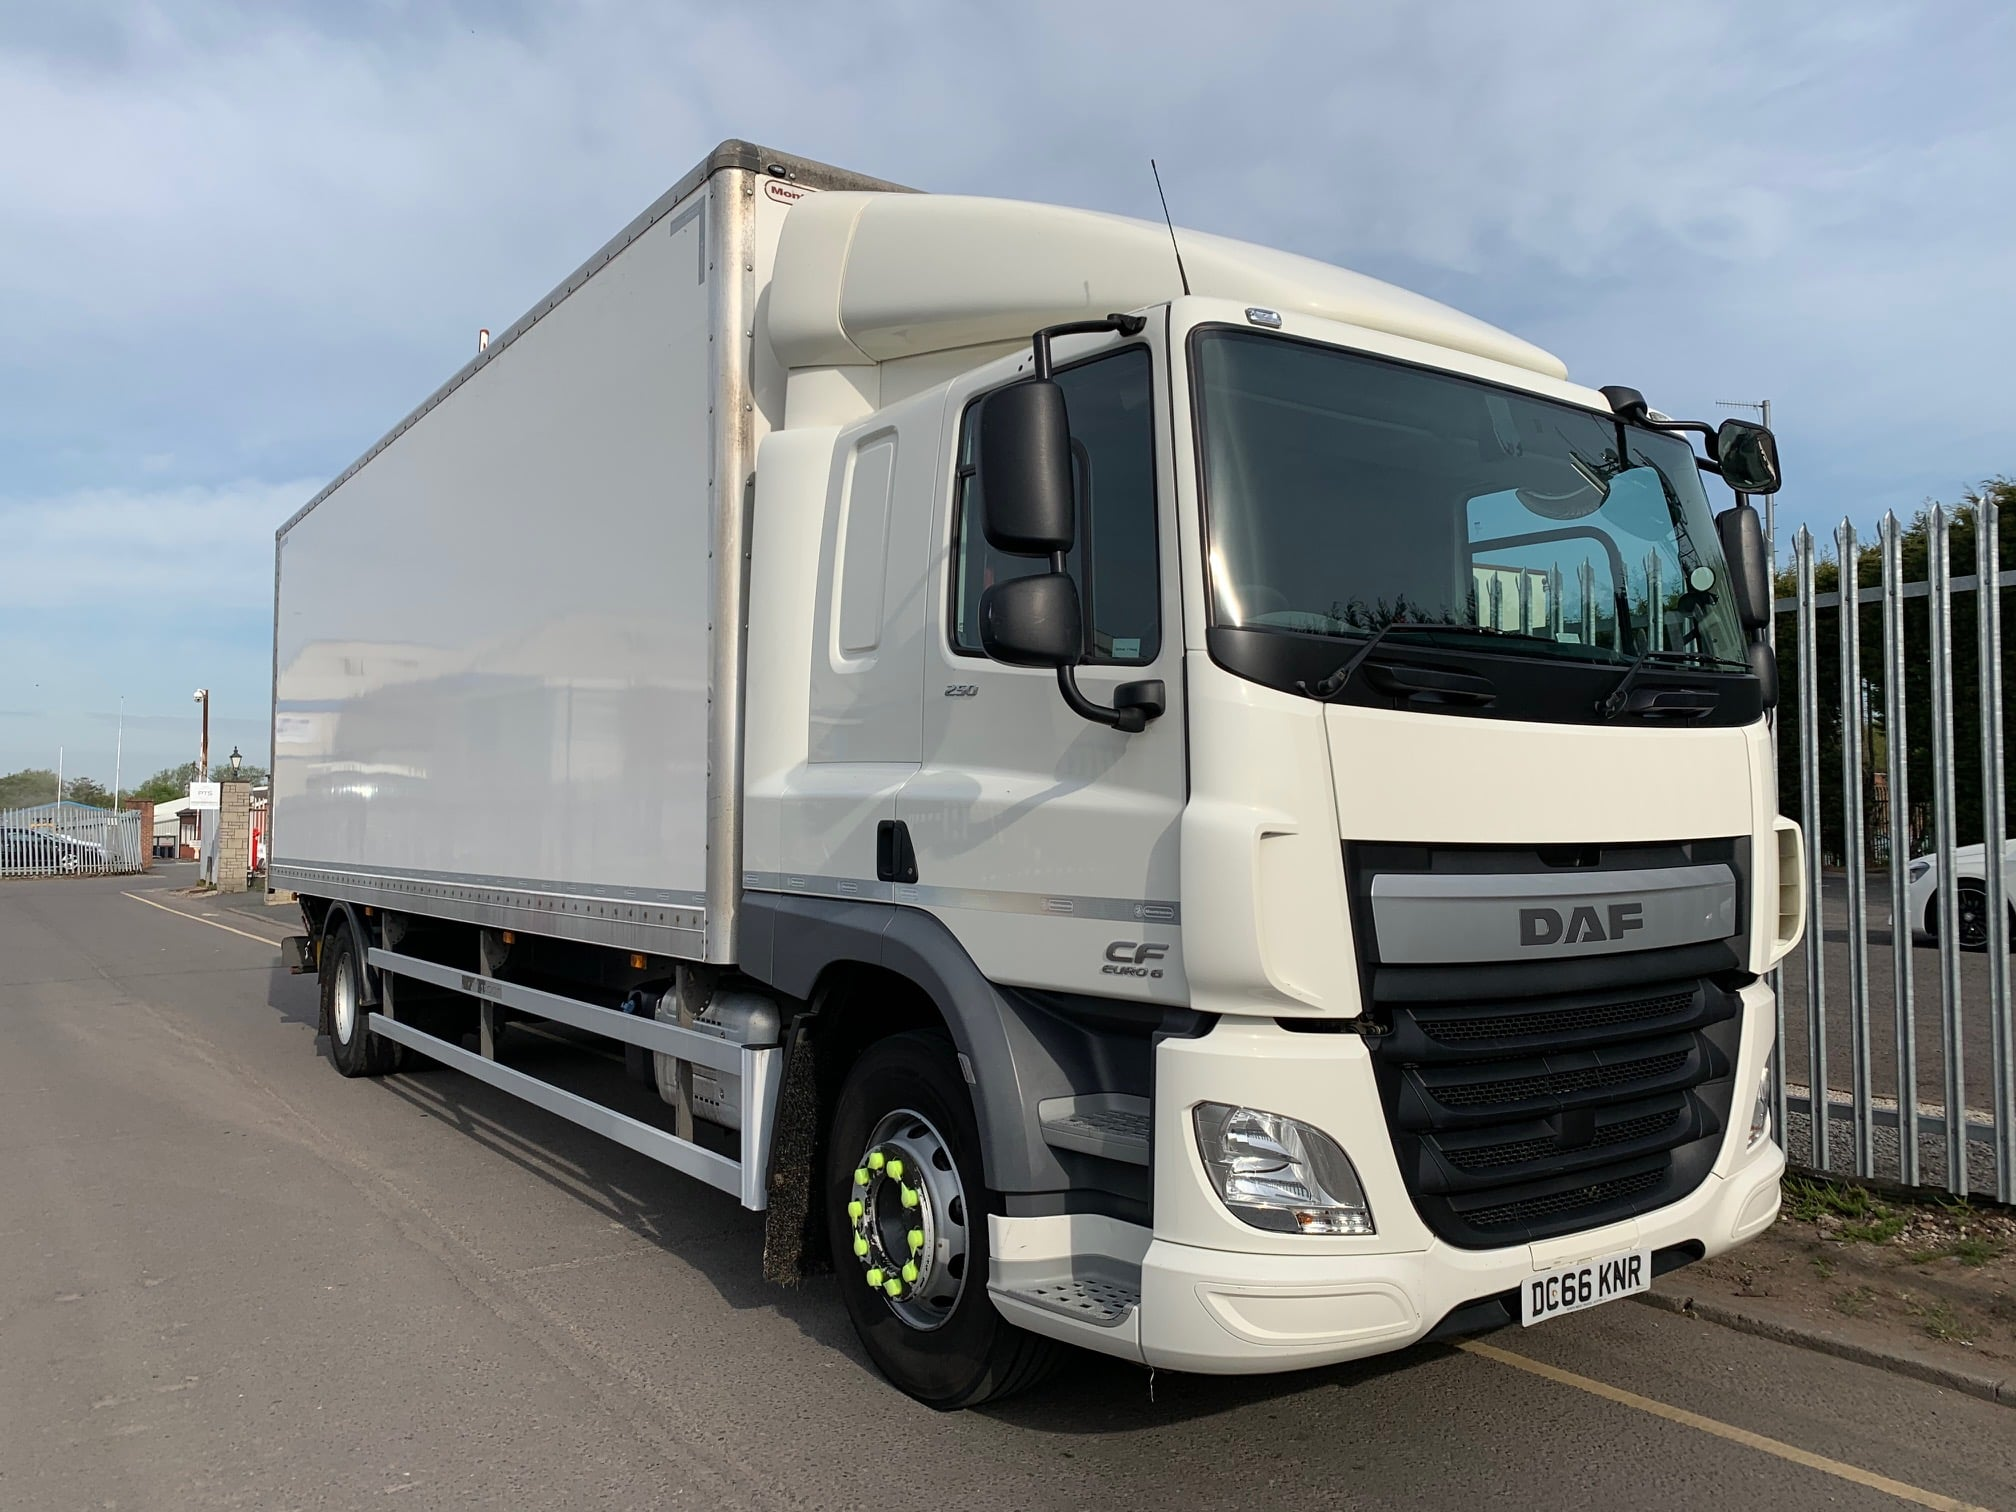 2016 (66) DAF CF Box. 18 Tonne, Dhollandia Tuckunder Tailift (1500kg Capacity), Euro 6, 6.9m Wheelbase, 6 Speed AS Tronic Automatic Gearbox, Space Single Sleeper Cab, Electrically Heated & Adjustable Mirrors, Cruise Control, Air Con, Radio/USB, Xtra Comfort Mattress, 200 Litre Fuel Tank/ 25 Litre ADBlue Tank, Flush Doors, 1 x Load Lock Rail, Choice & Warranty Available.